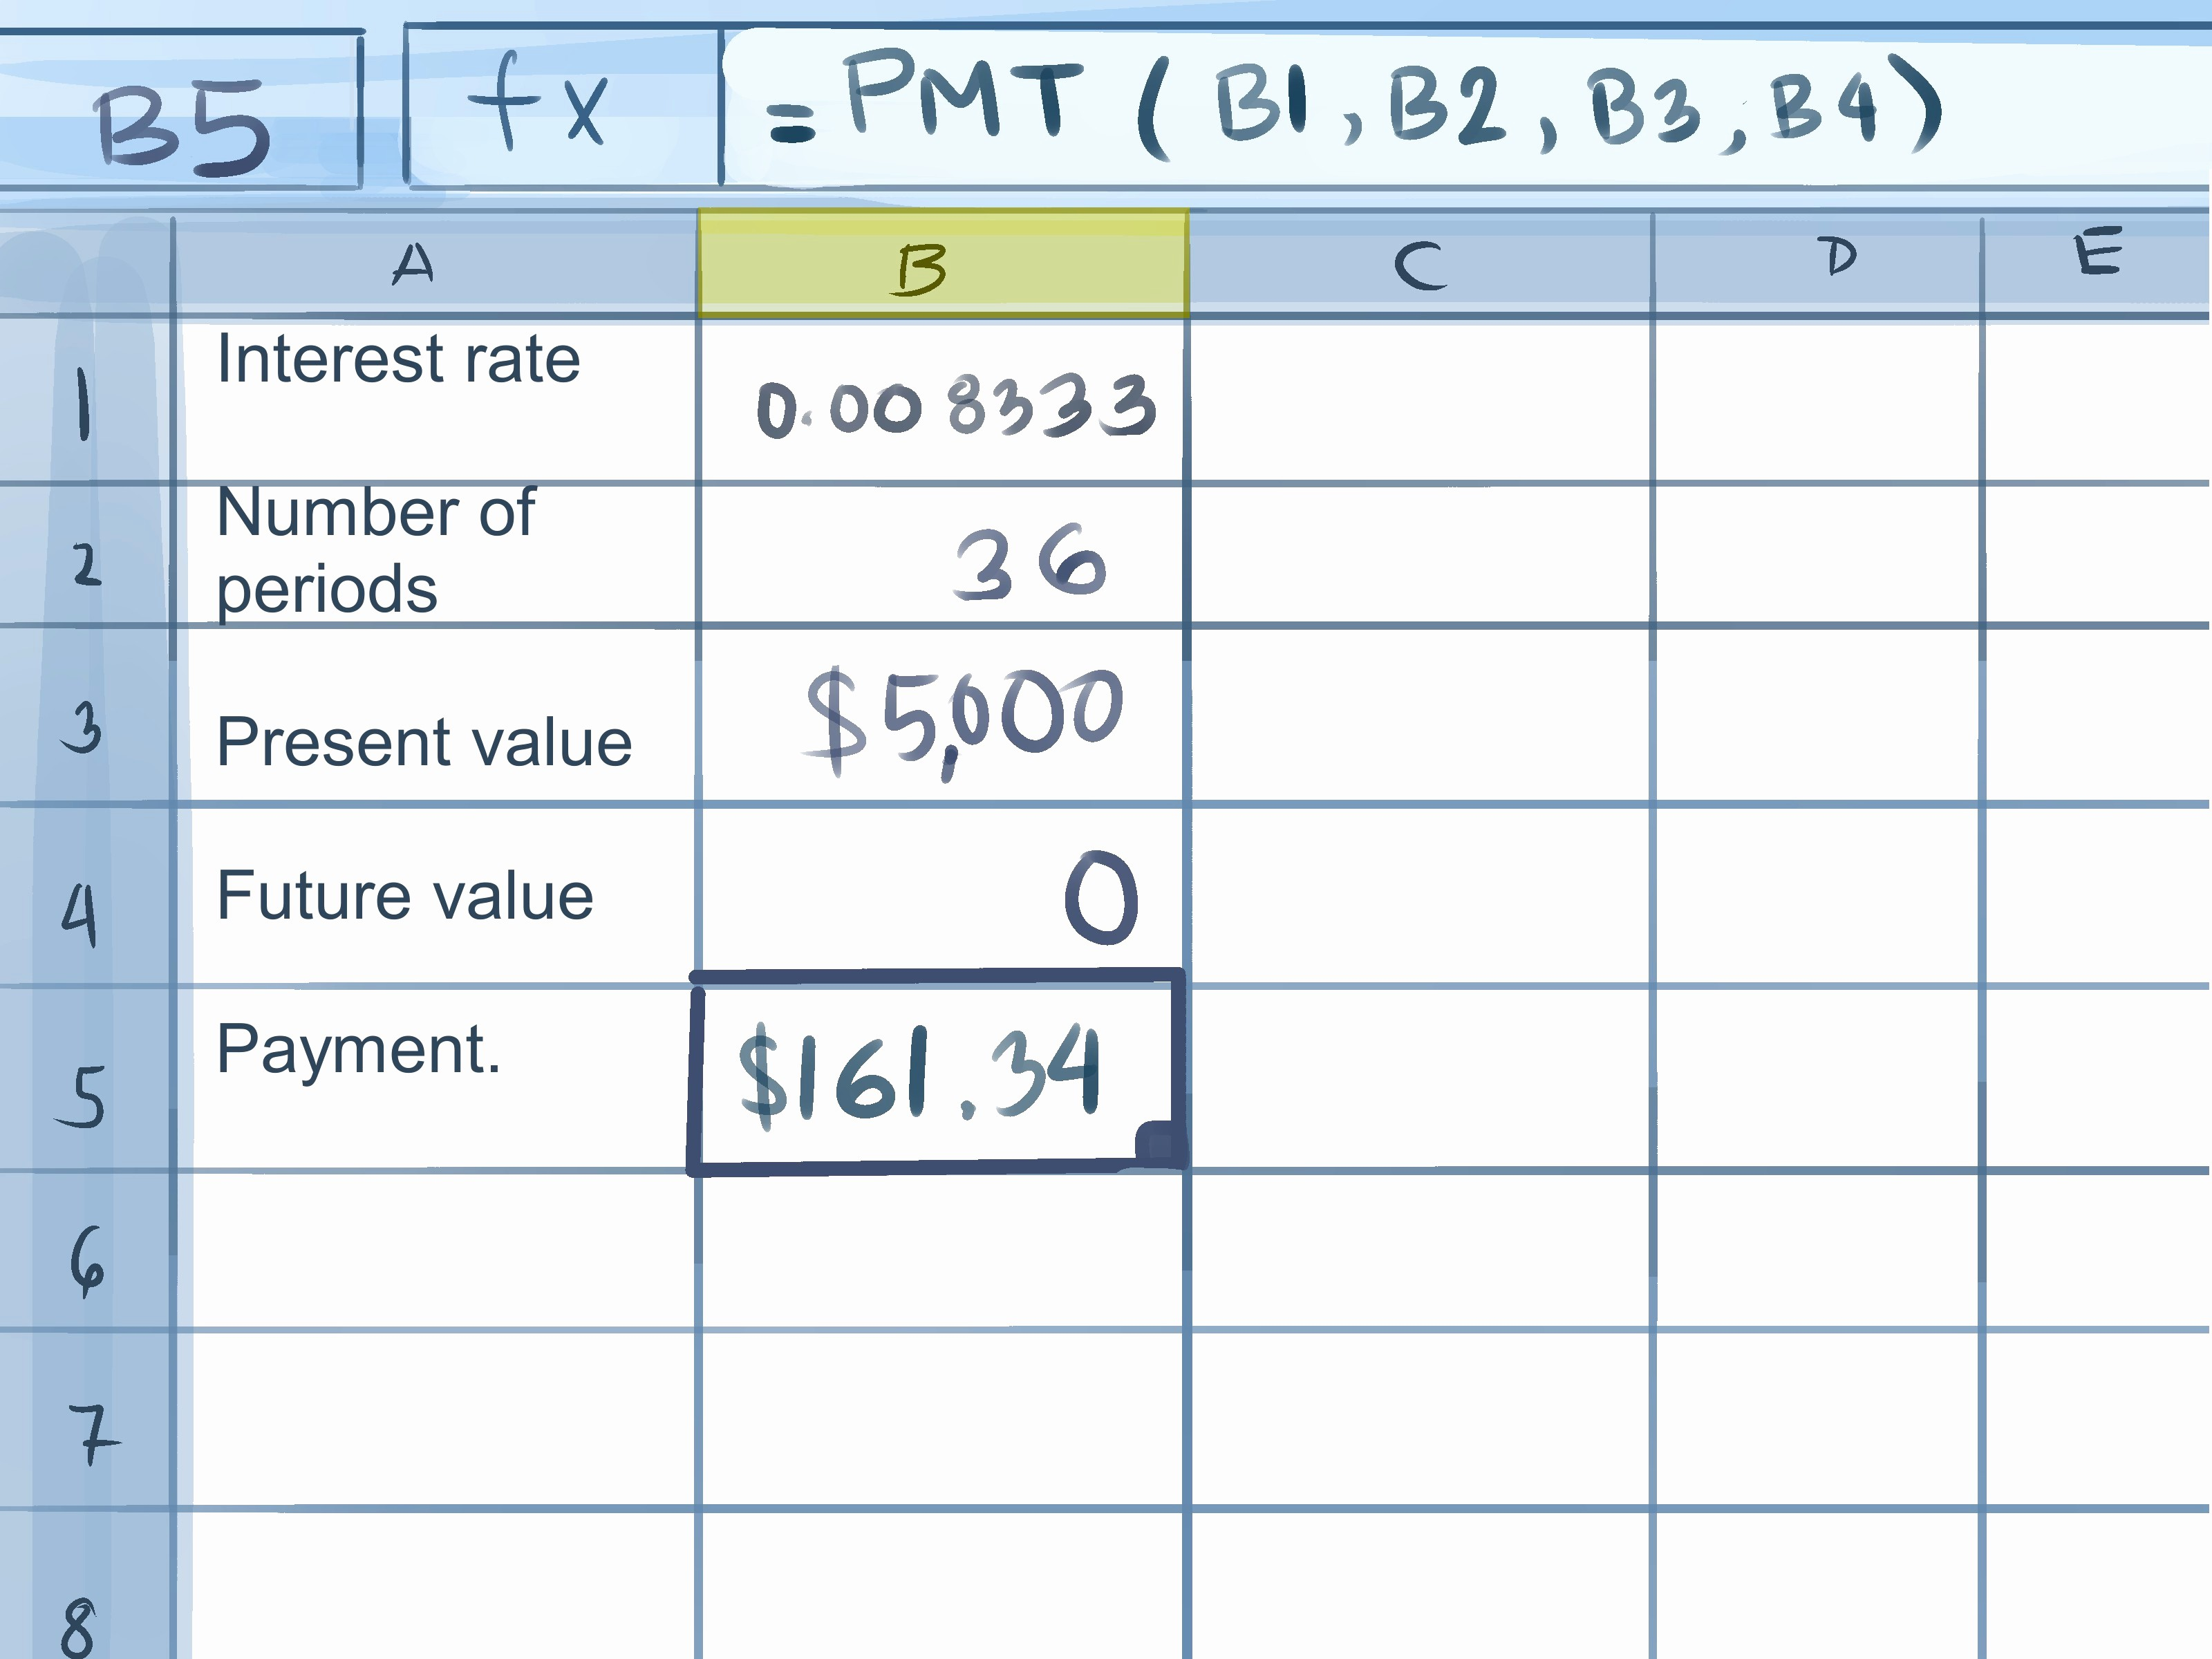 Credit Card Payment Excel Template Best Of How to Calculate Credit Card Payments In Excel 10 Steps